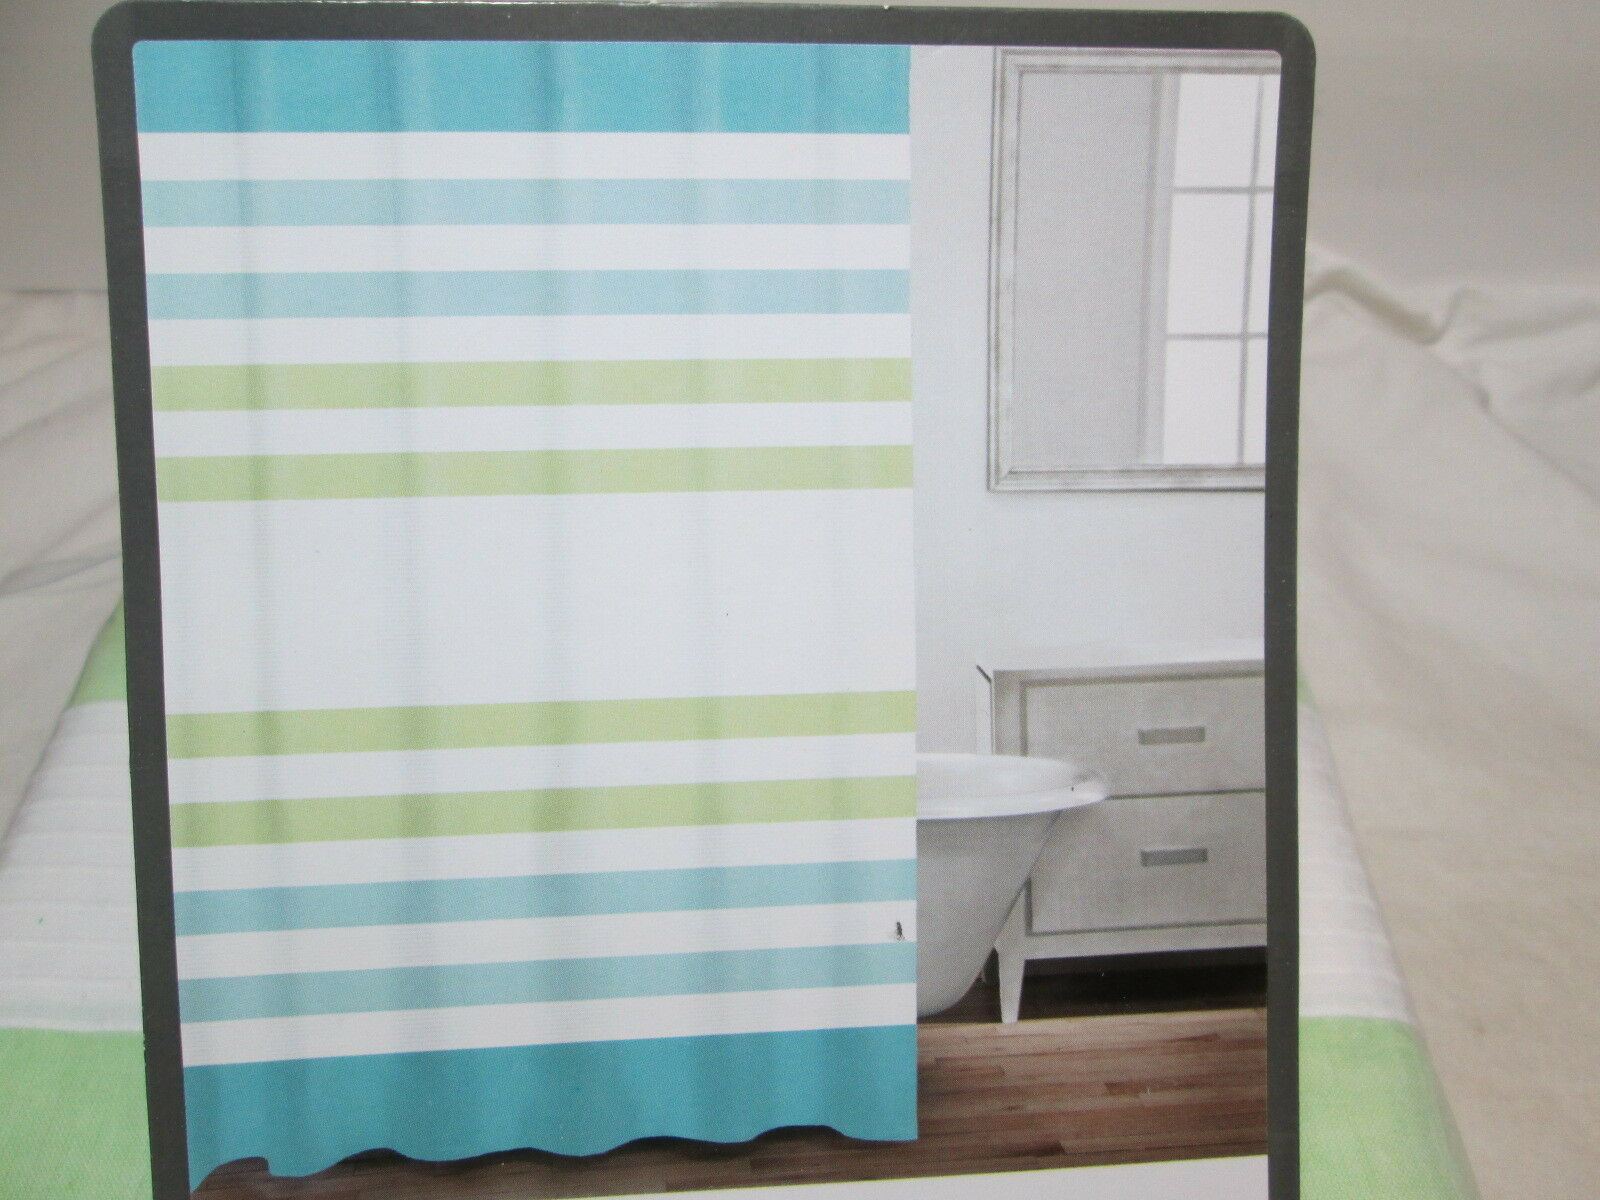 1 Of 6Only Available New Caro Home Cotton Shower Curtain 72x72 Blue Green White Horizontal Stripe